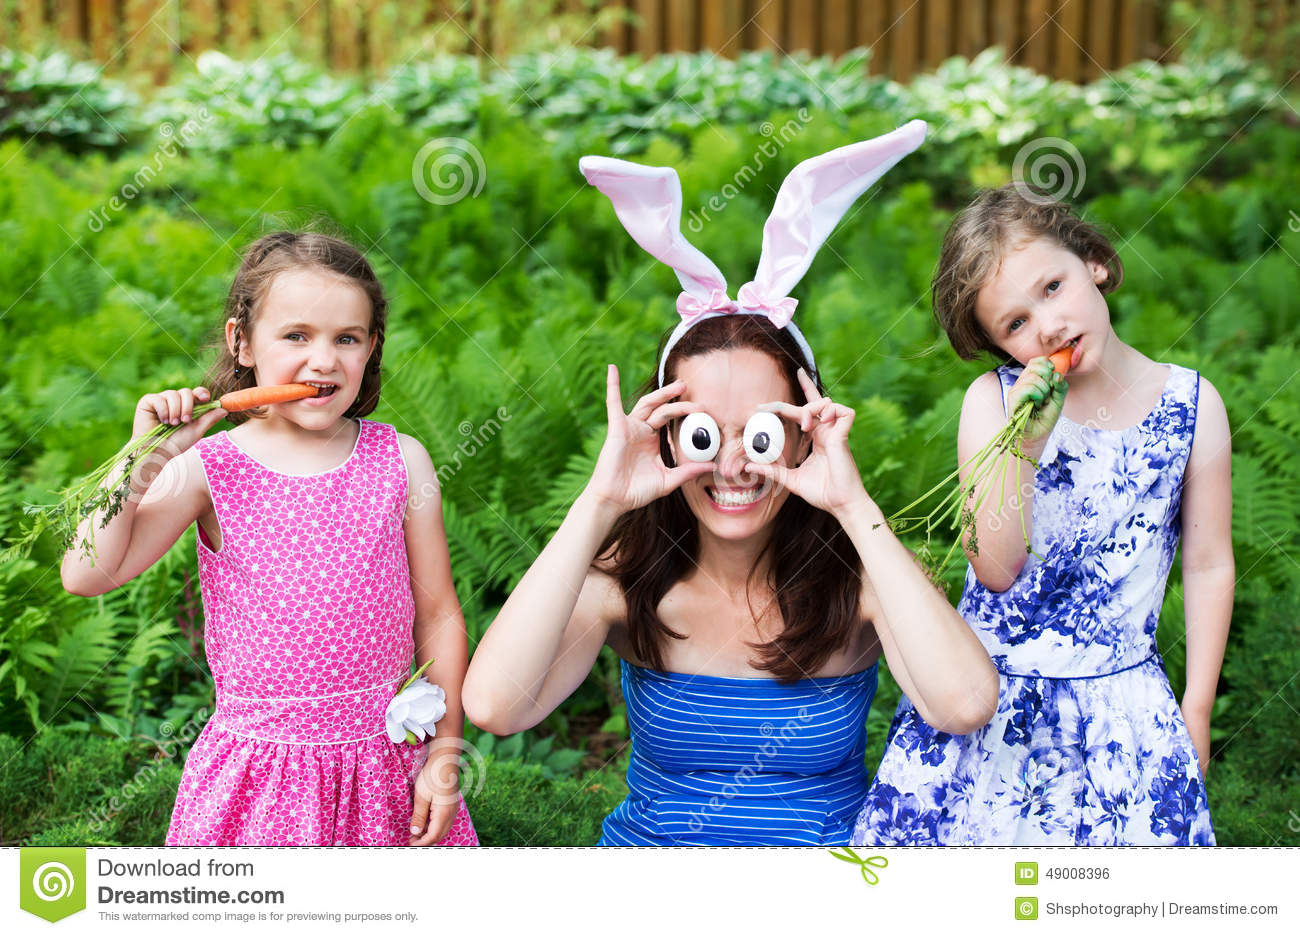 Download Mother Wearing Bunny Ears And Silly Eyes Poses With Children Stock Photo